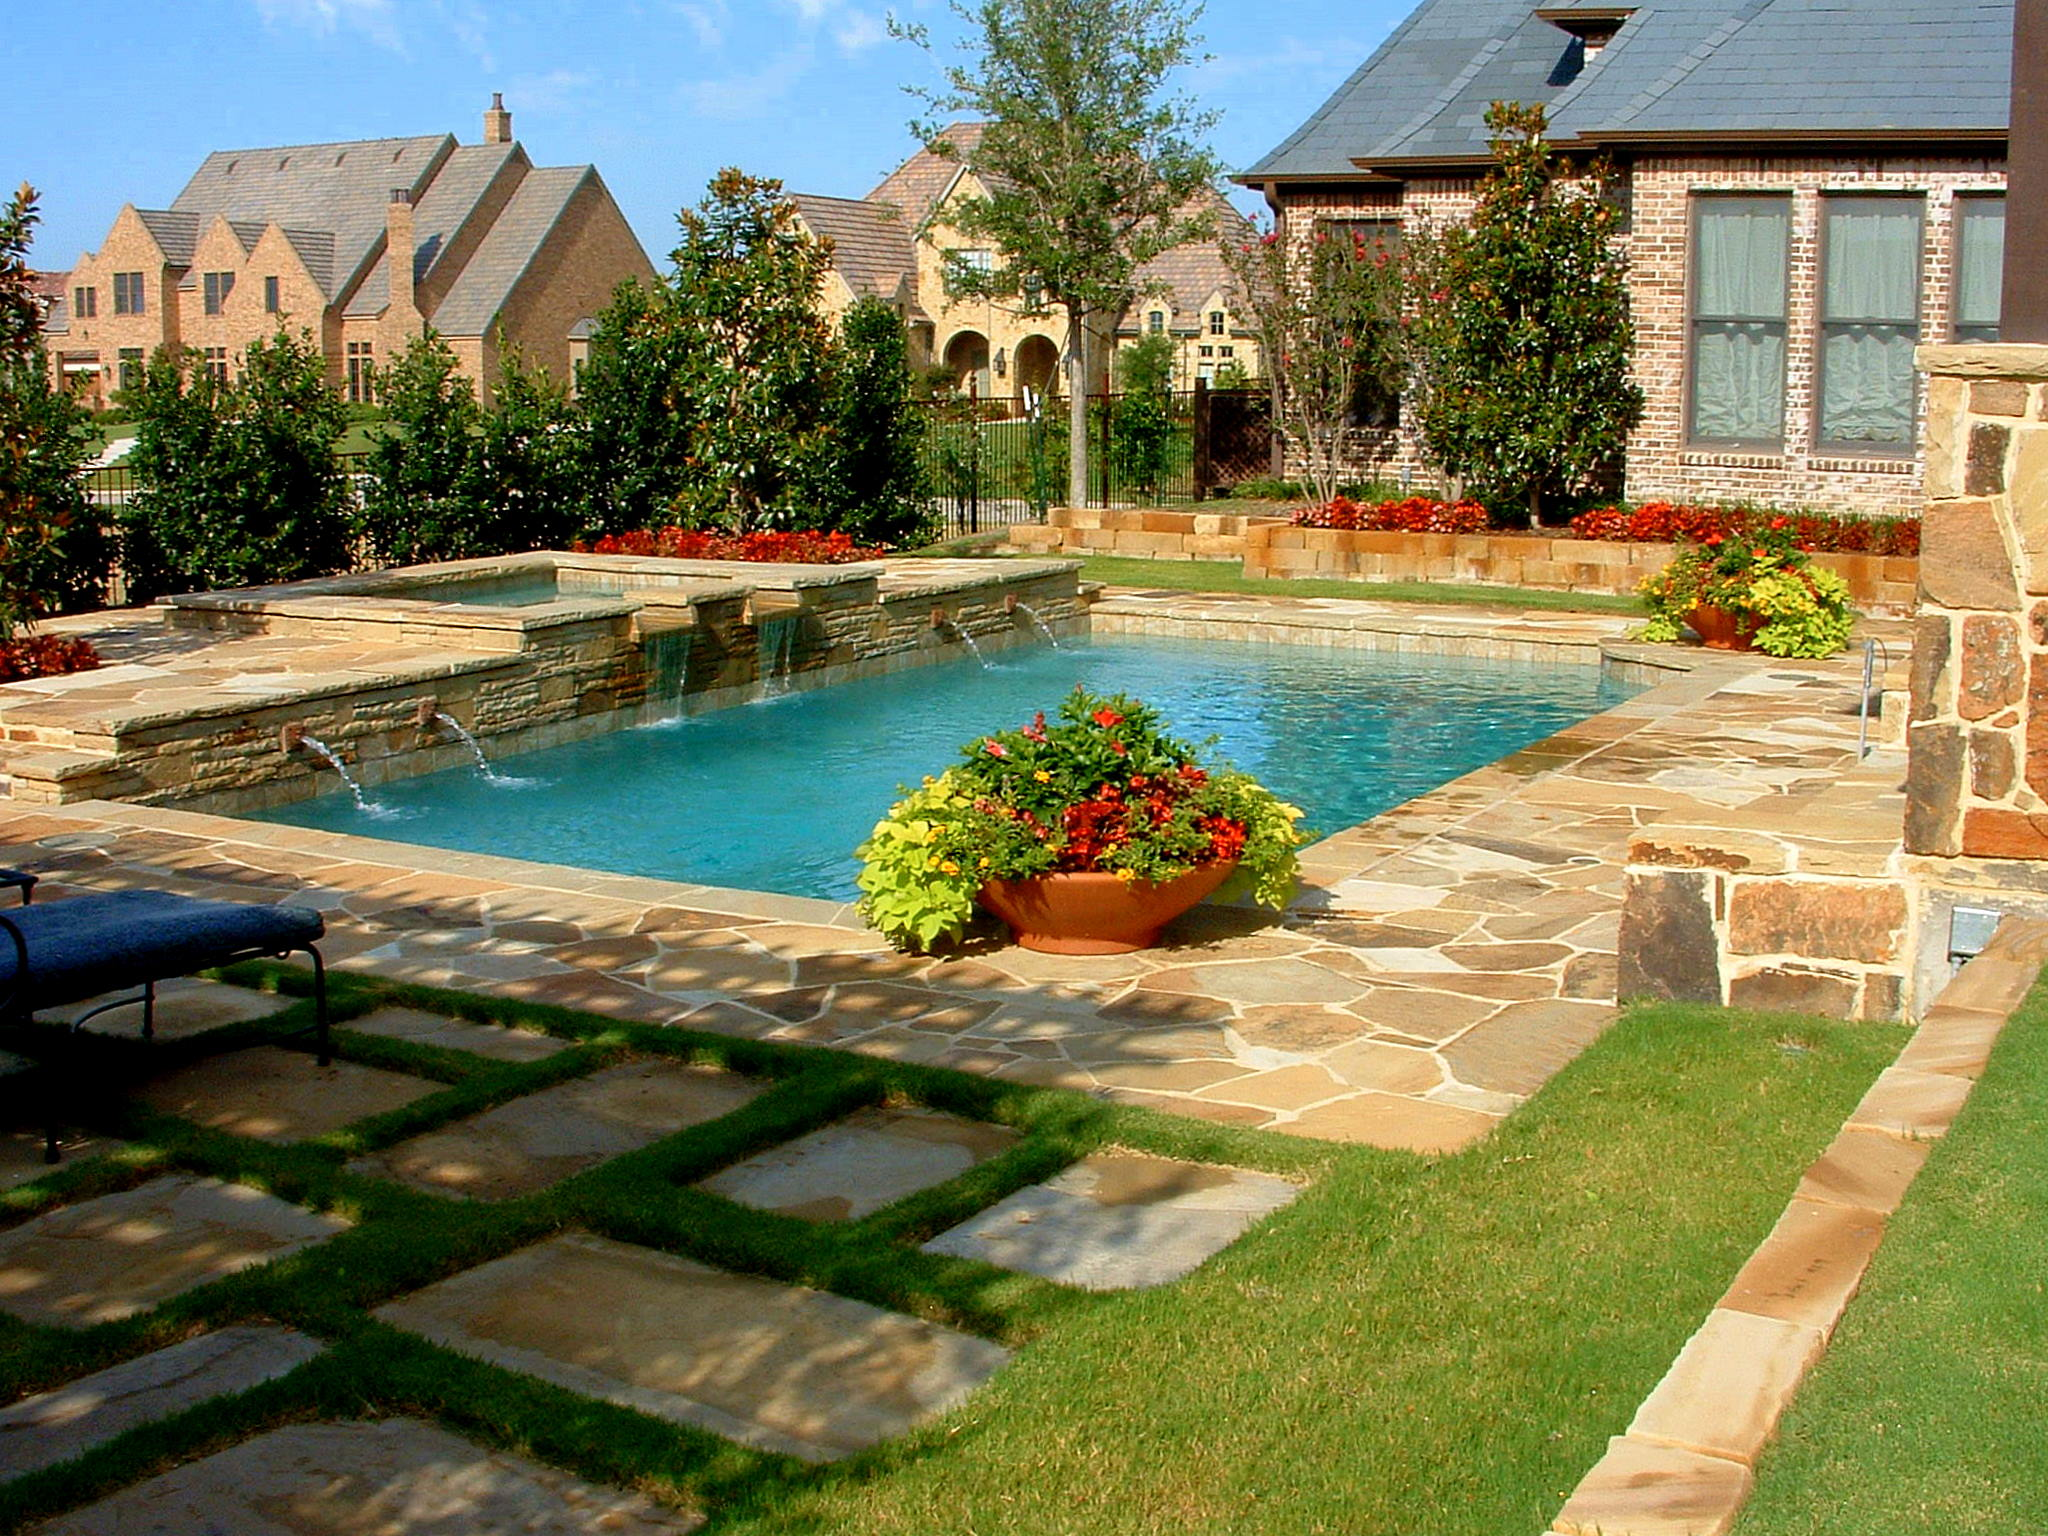 Backyard landscaping ideas swimming pool design for Swimming pool landscaping ideas